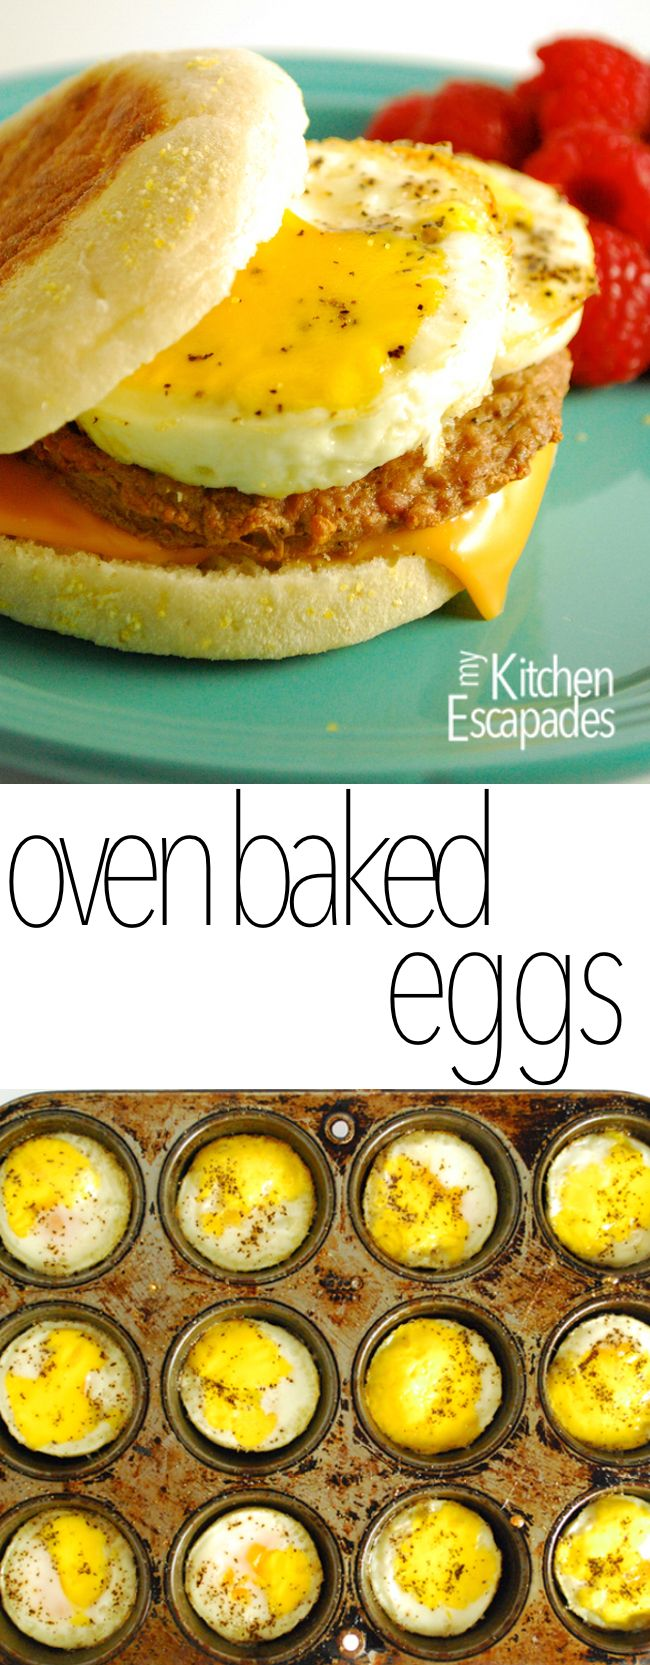 Breakfast Freezer Sandwiches made with oven baked eggs